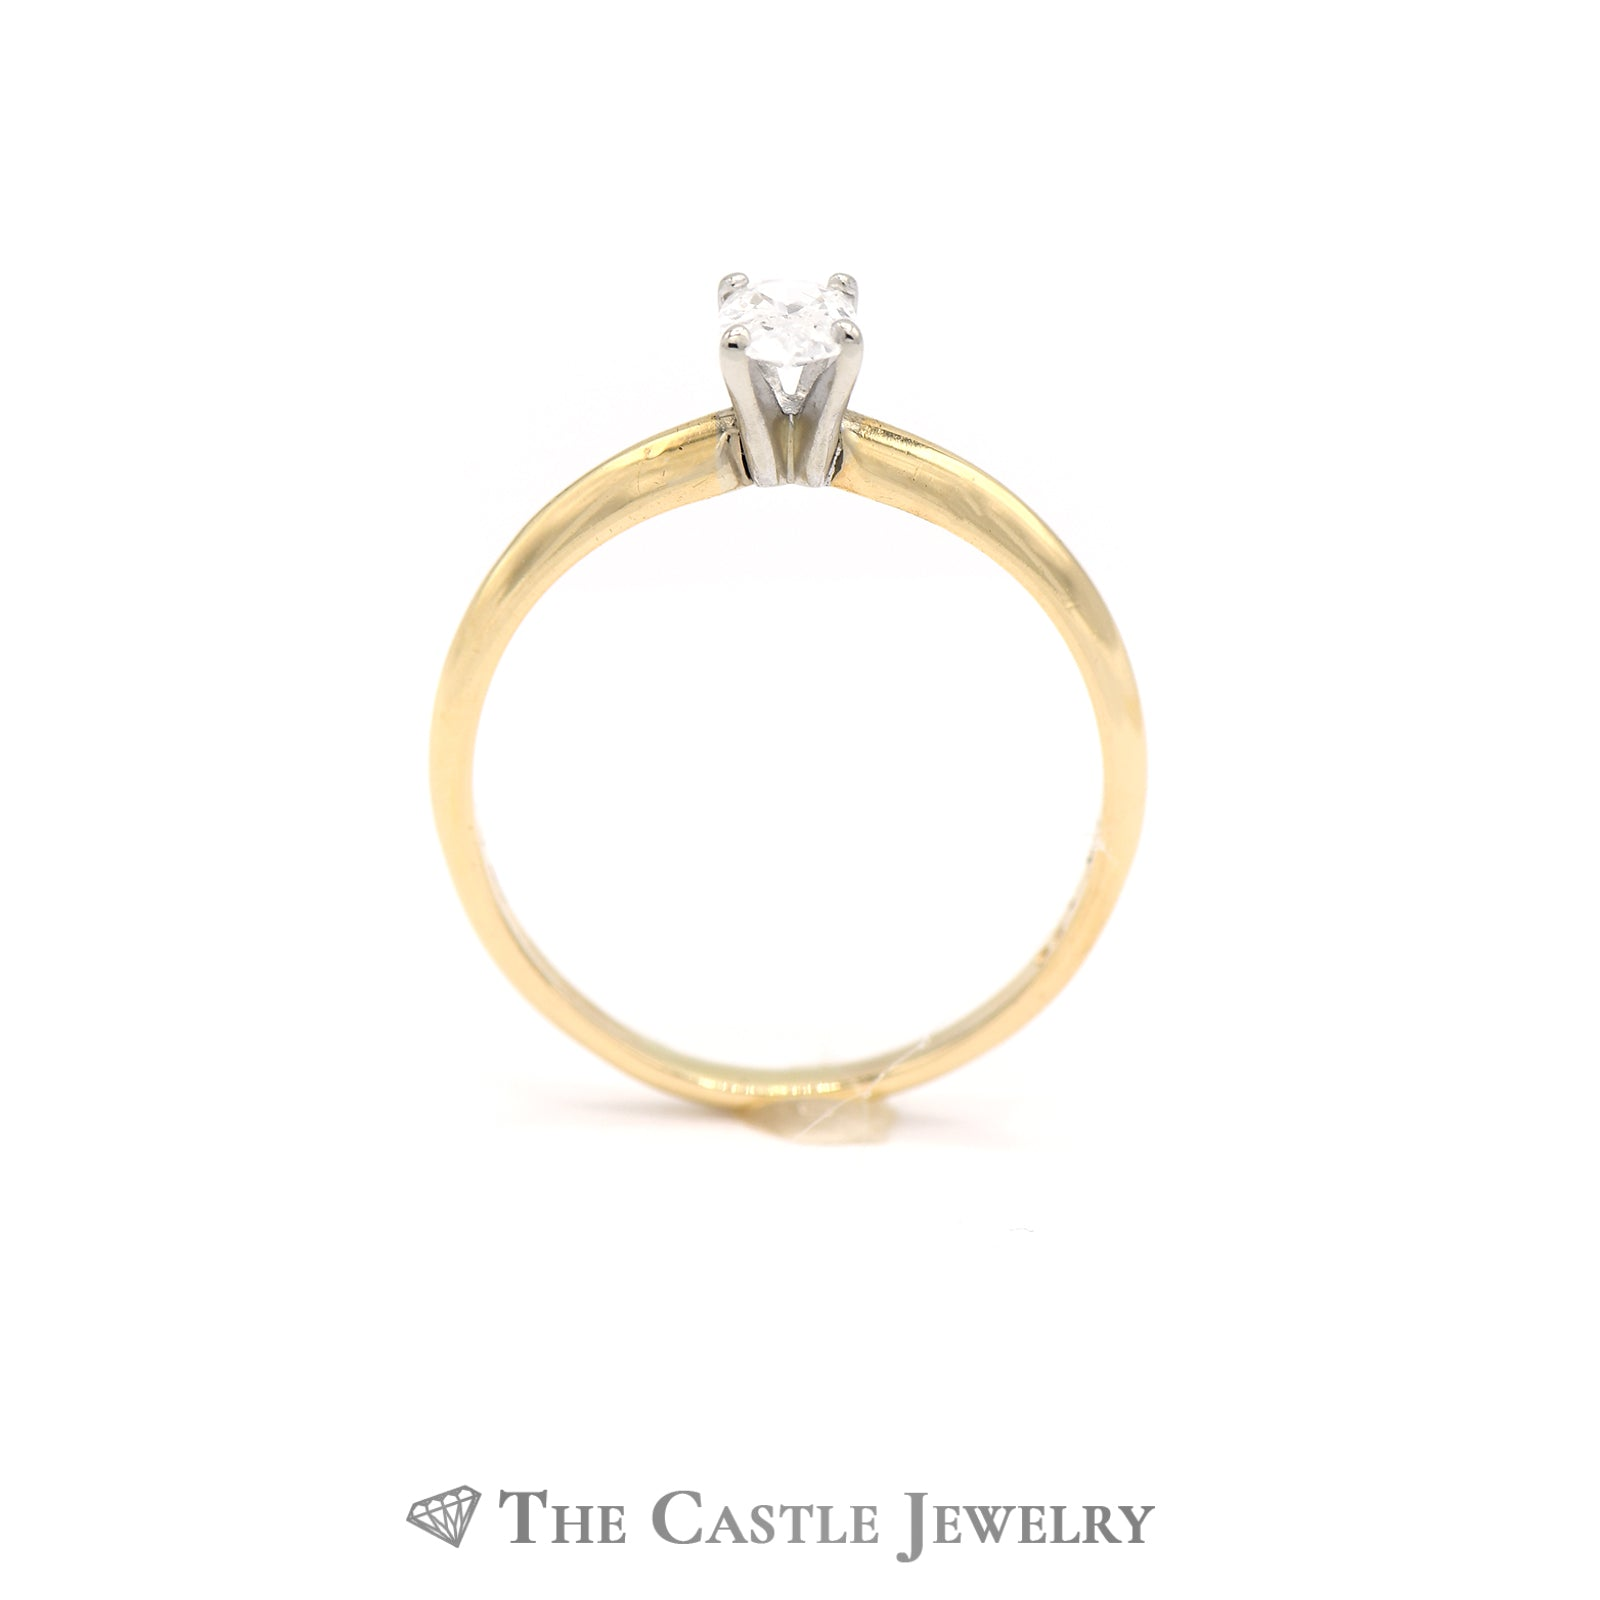 Oval Diamond Solitaire Engagement Ring in 14k Yellow Gold-1